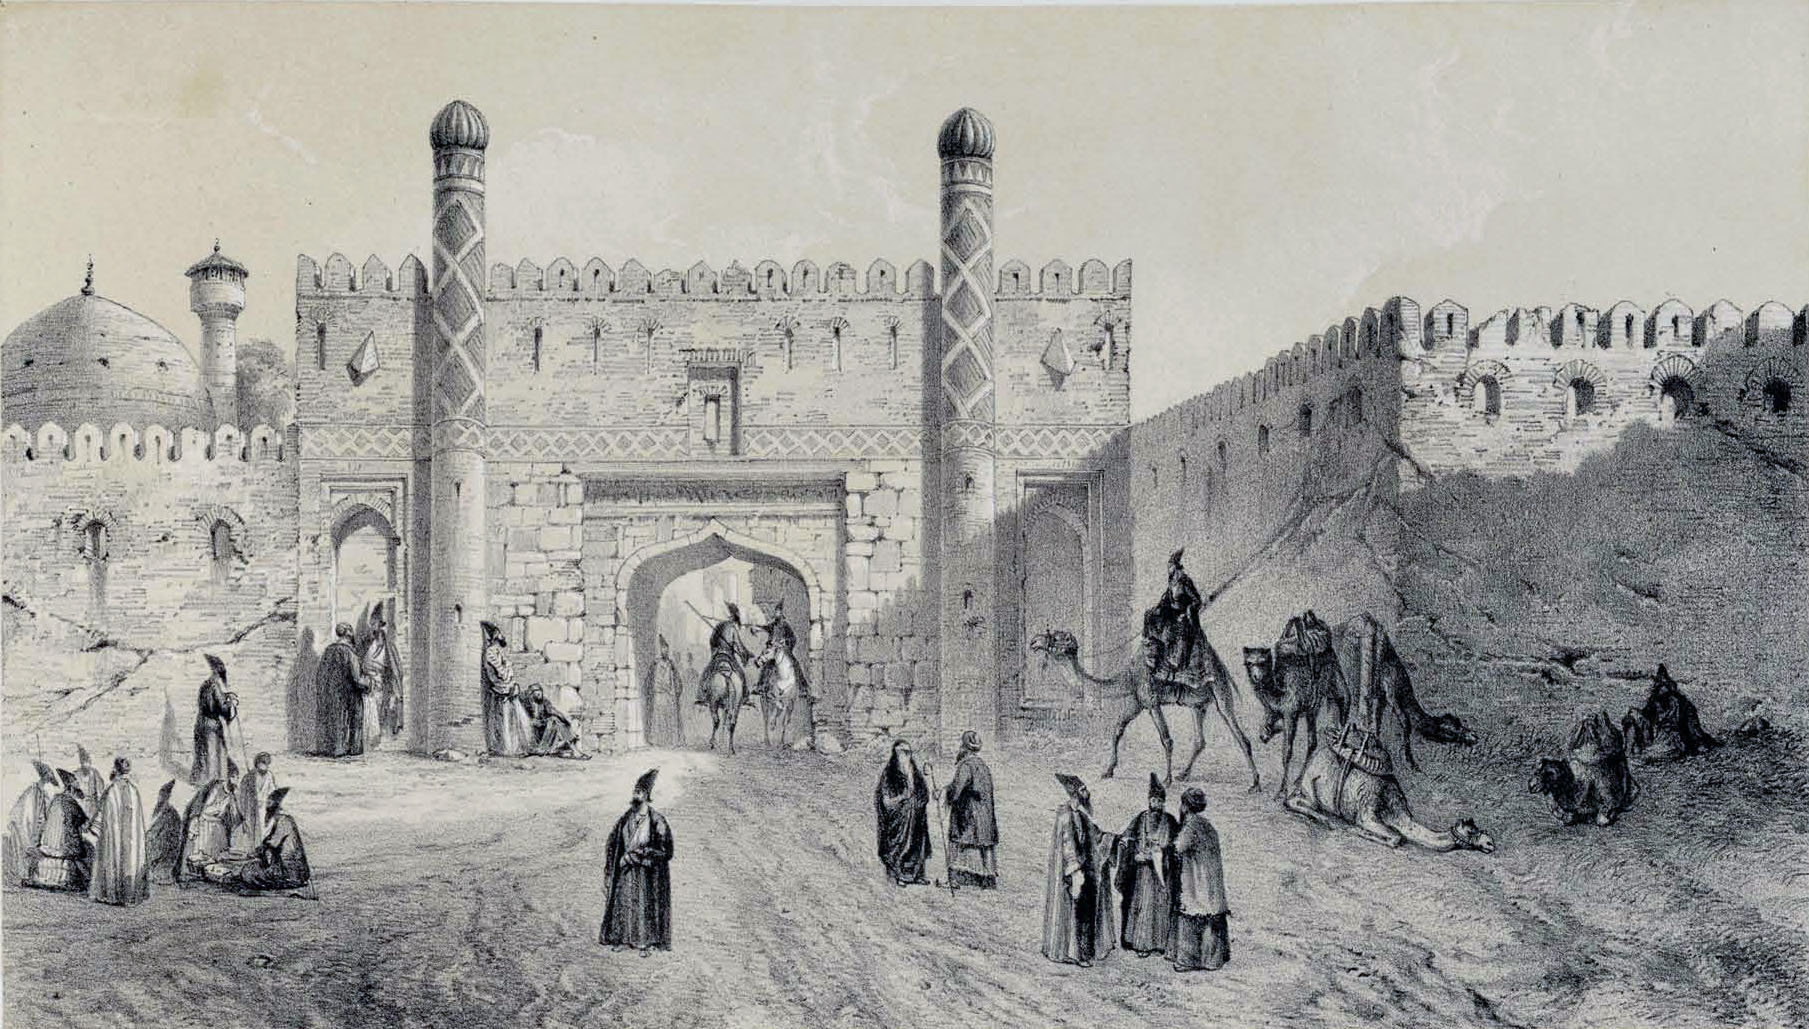 City_Gate_,_Tabriz_by_Eugène_Flandin